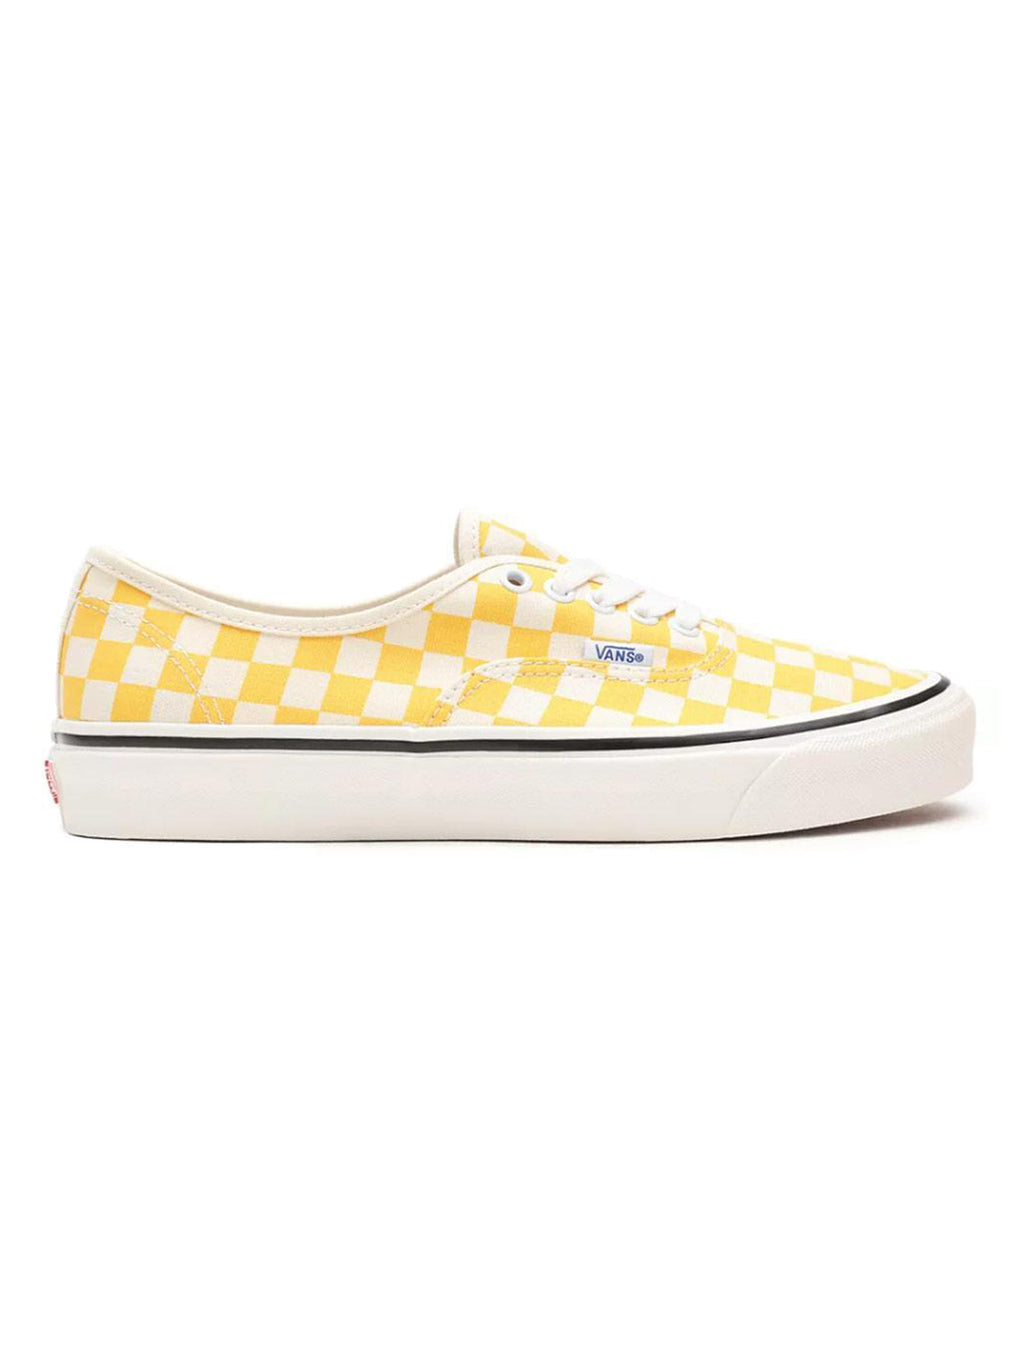 OG Yellow & OG Checker Anaheim Factory Authentic 44 DX Sneakers